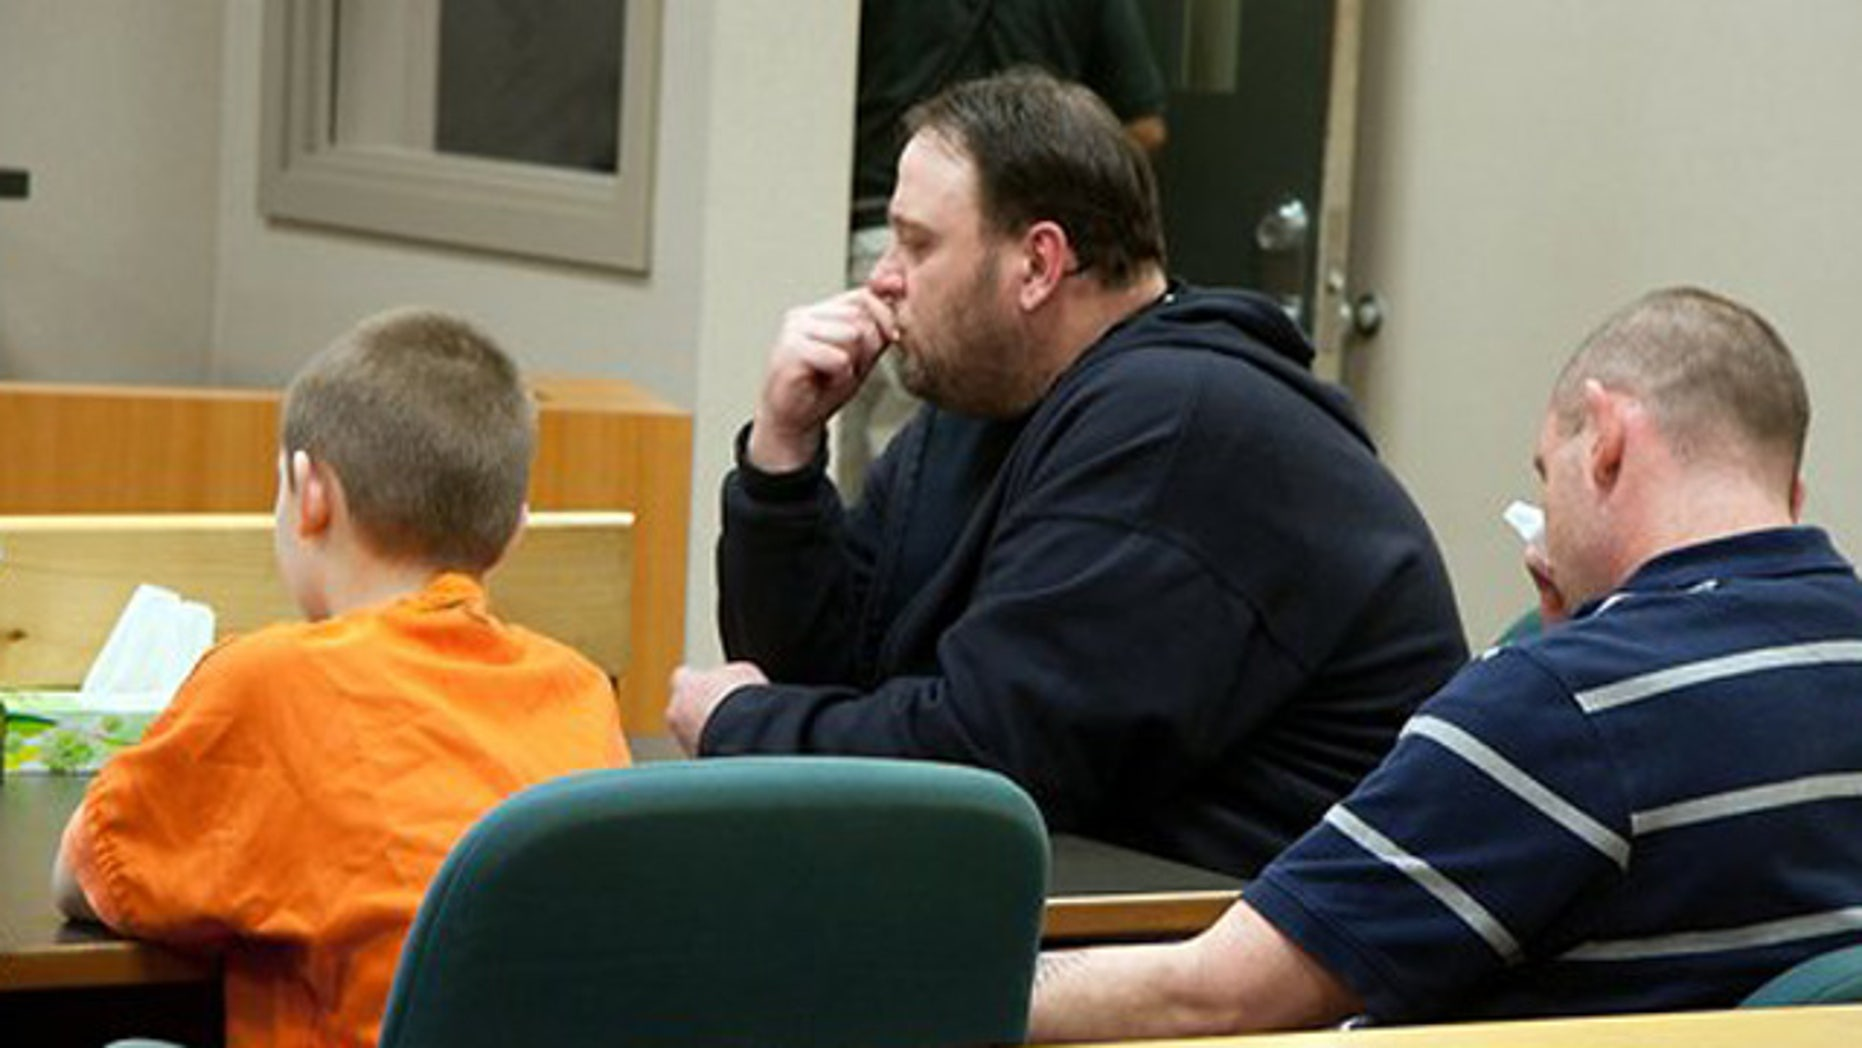 Feb. 23, 2012: The 9-year-old boy accused of accidentally shooting a classmate at a Bremerton, Wash. elementary school, left, appears in Kitsap juvenile court with his uncle and legal guardian, Patrick Cochran, center, and his father, Jason Cochran in Port Orchard, Wash.